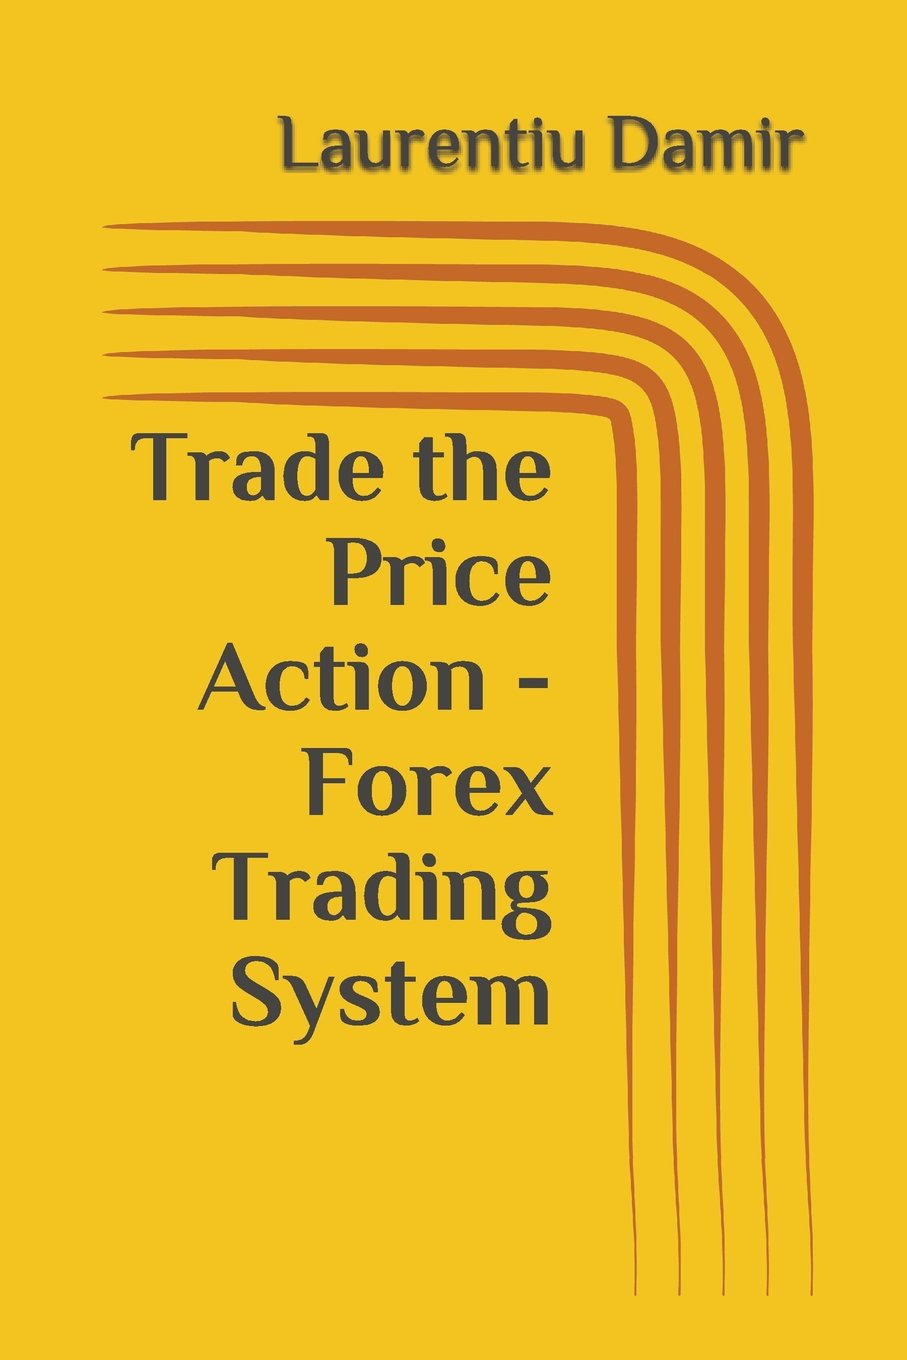 price action forex books from amazon